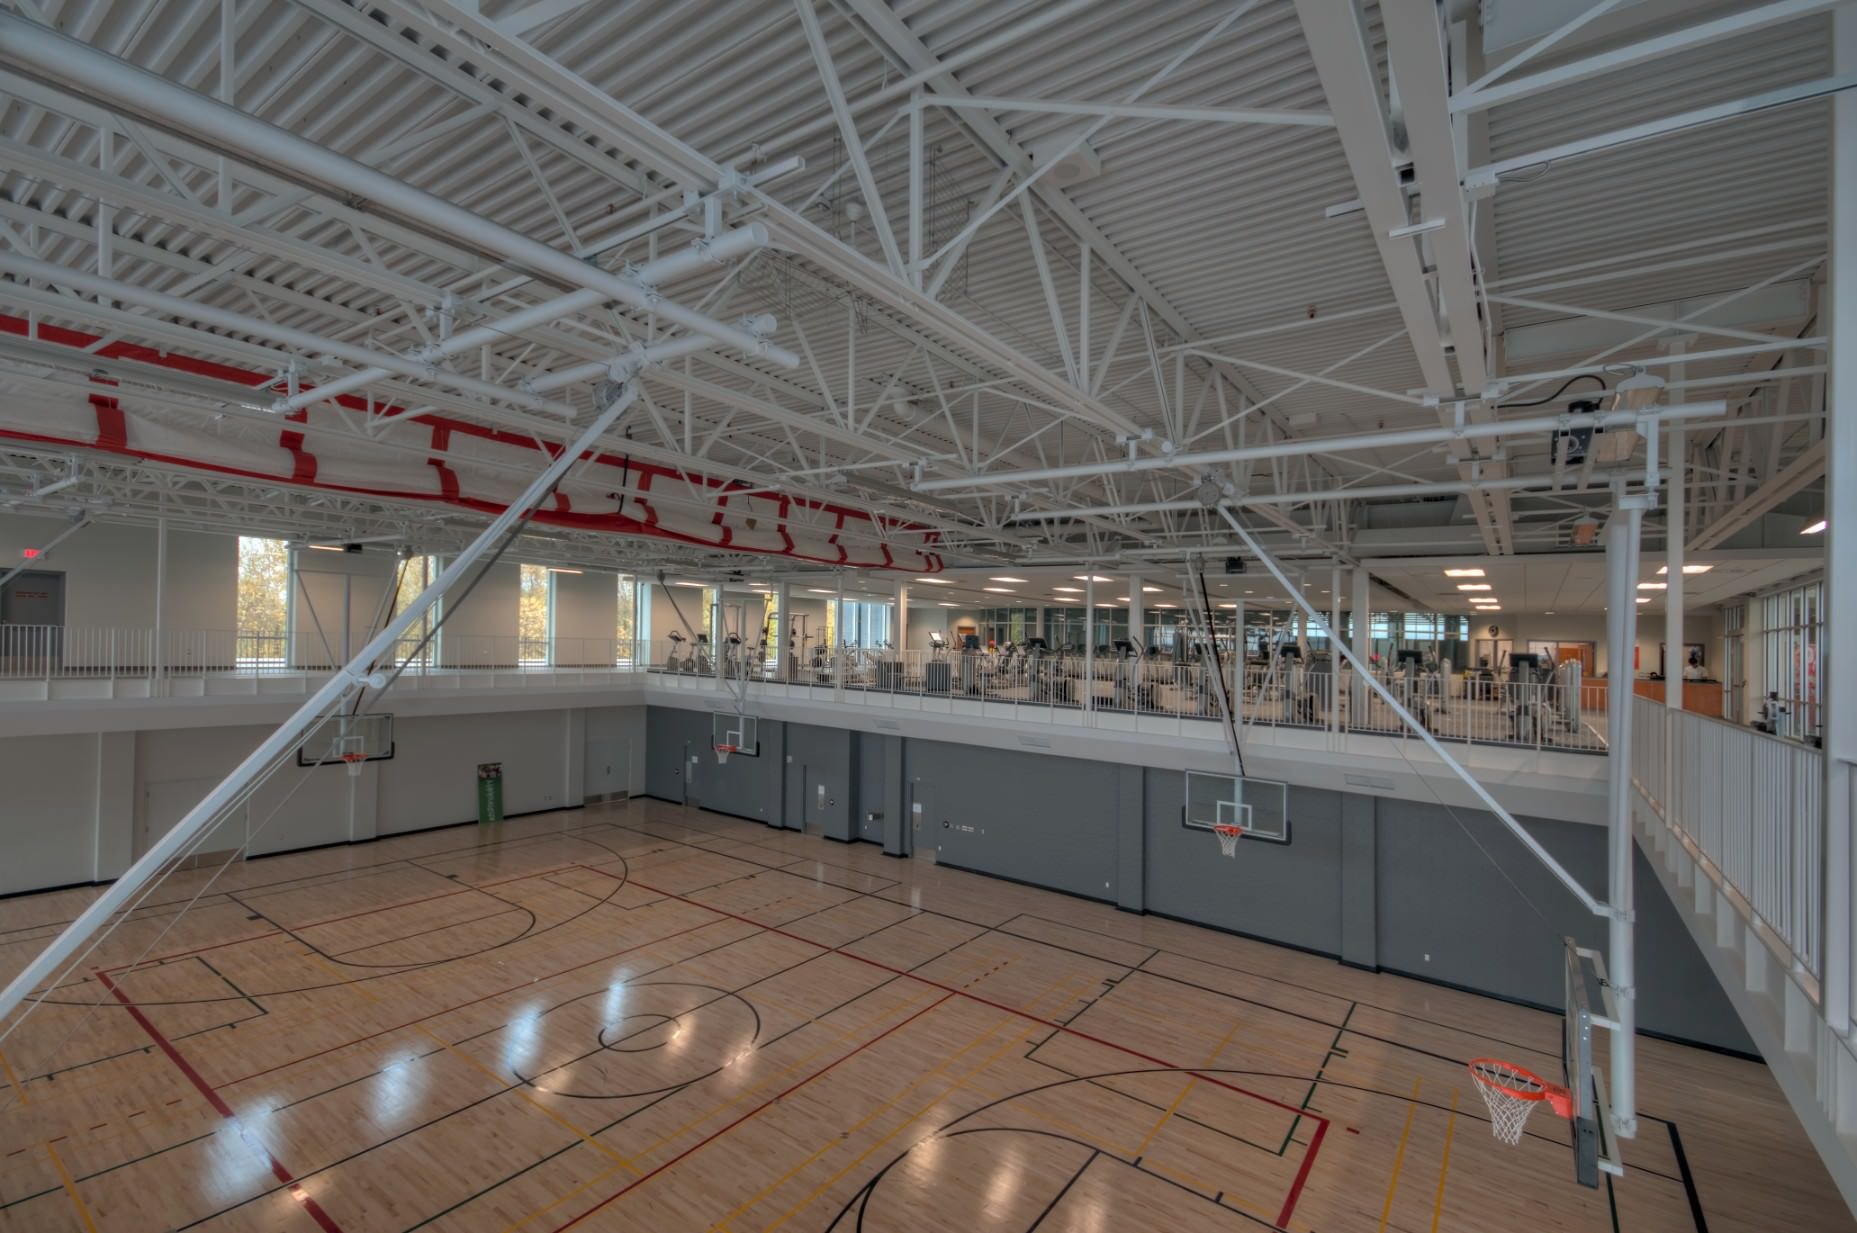 Interior architectural photography of Gym at the Komoka Wellness Centre